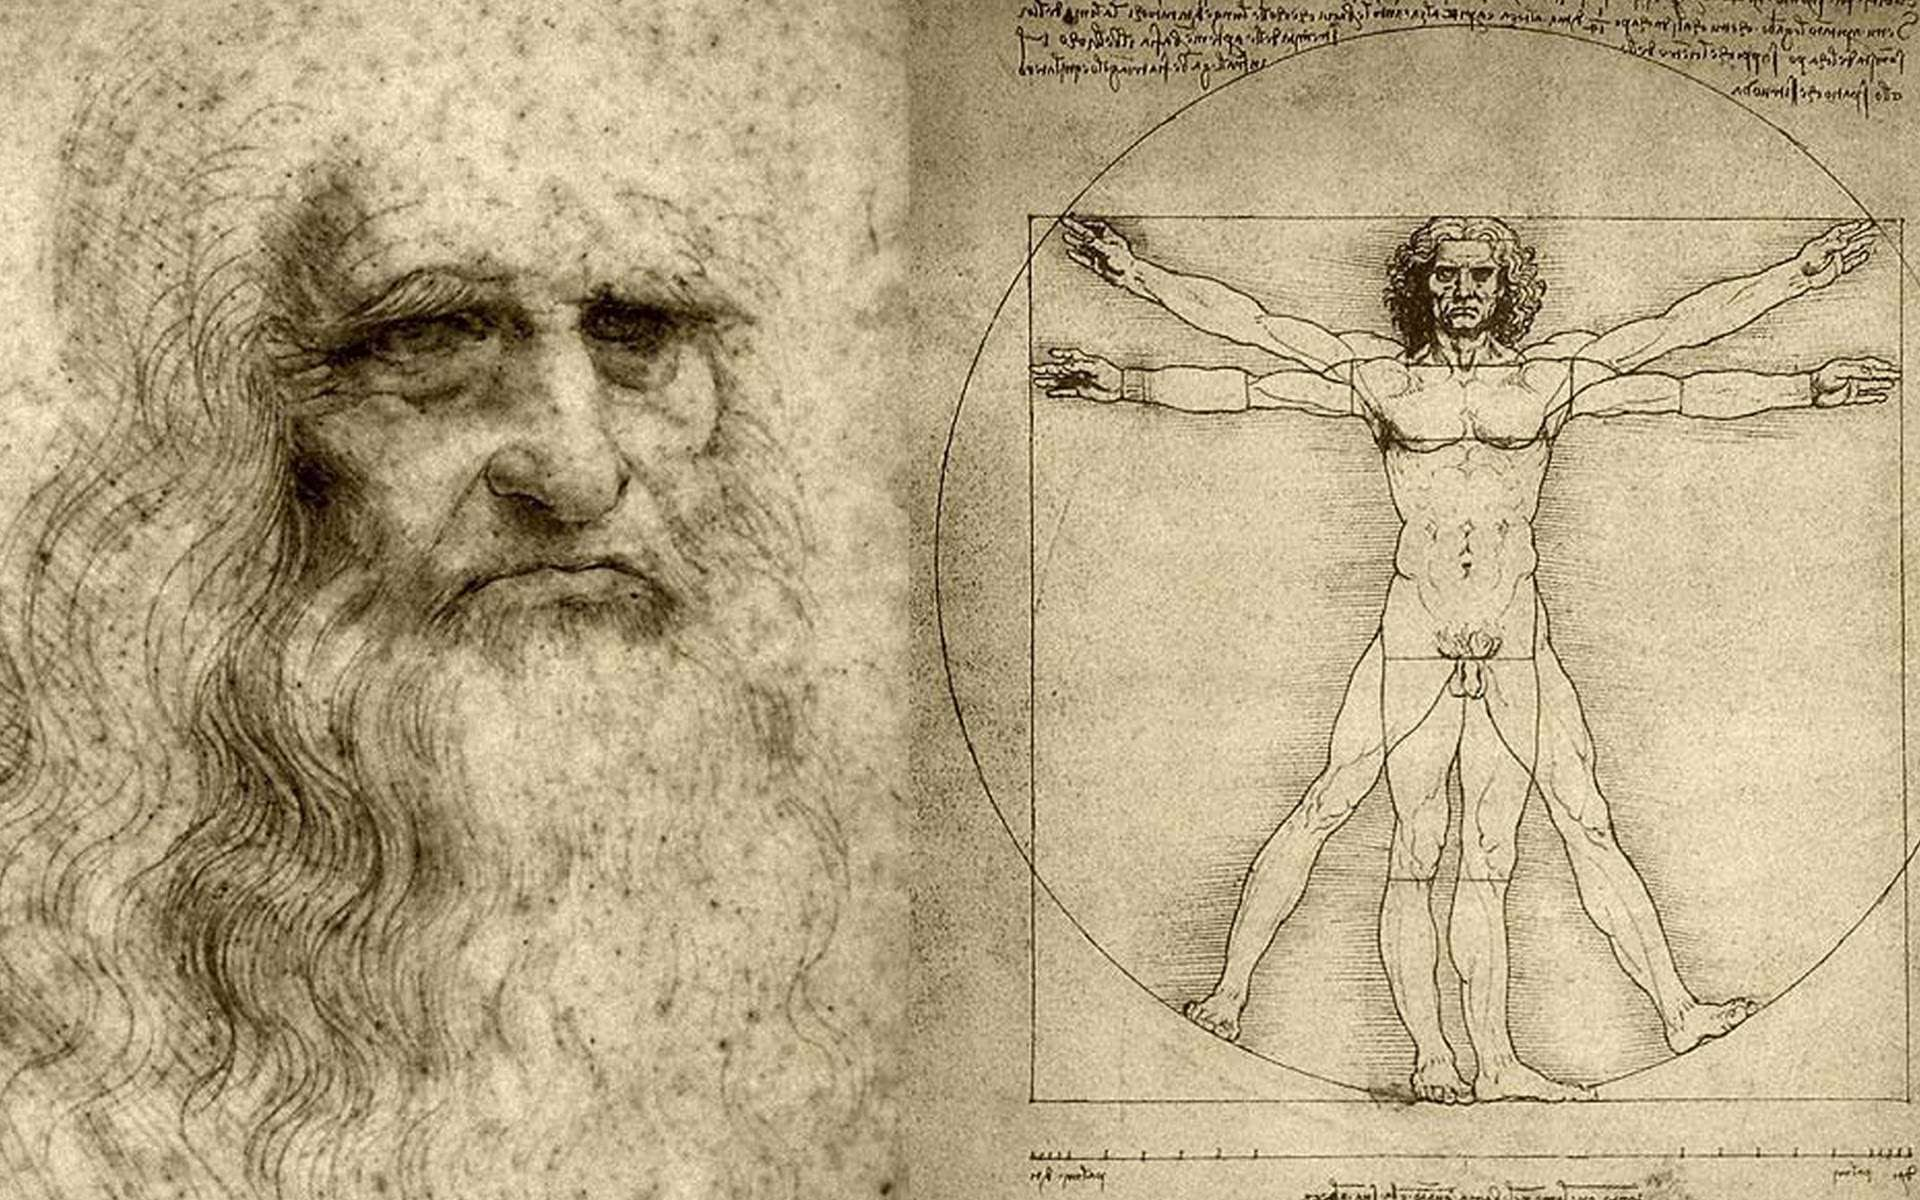 How Leonardo da Vinci Can Help You Land Your Next Job